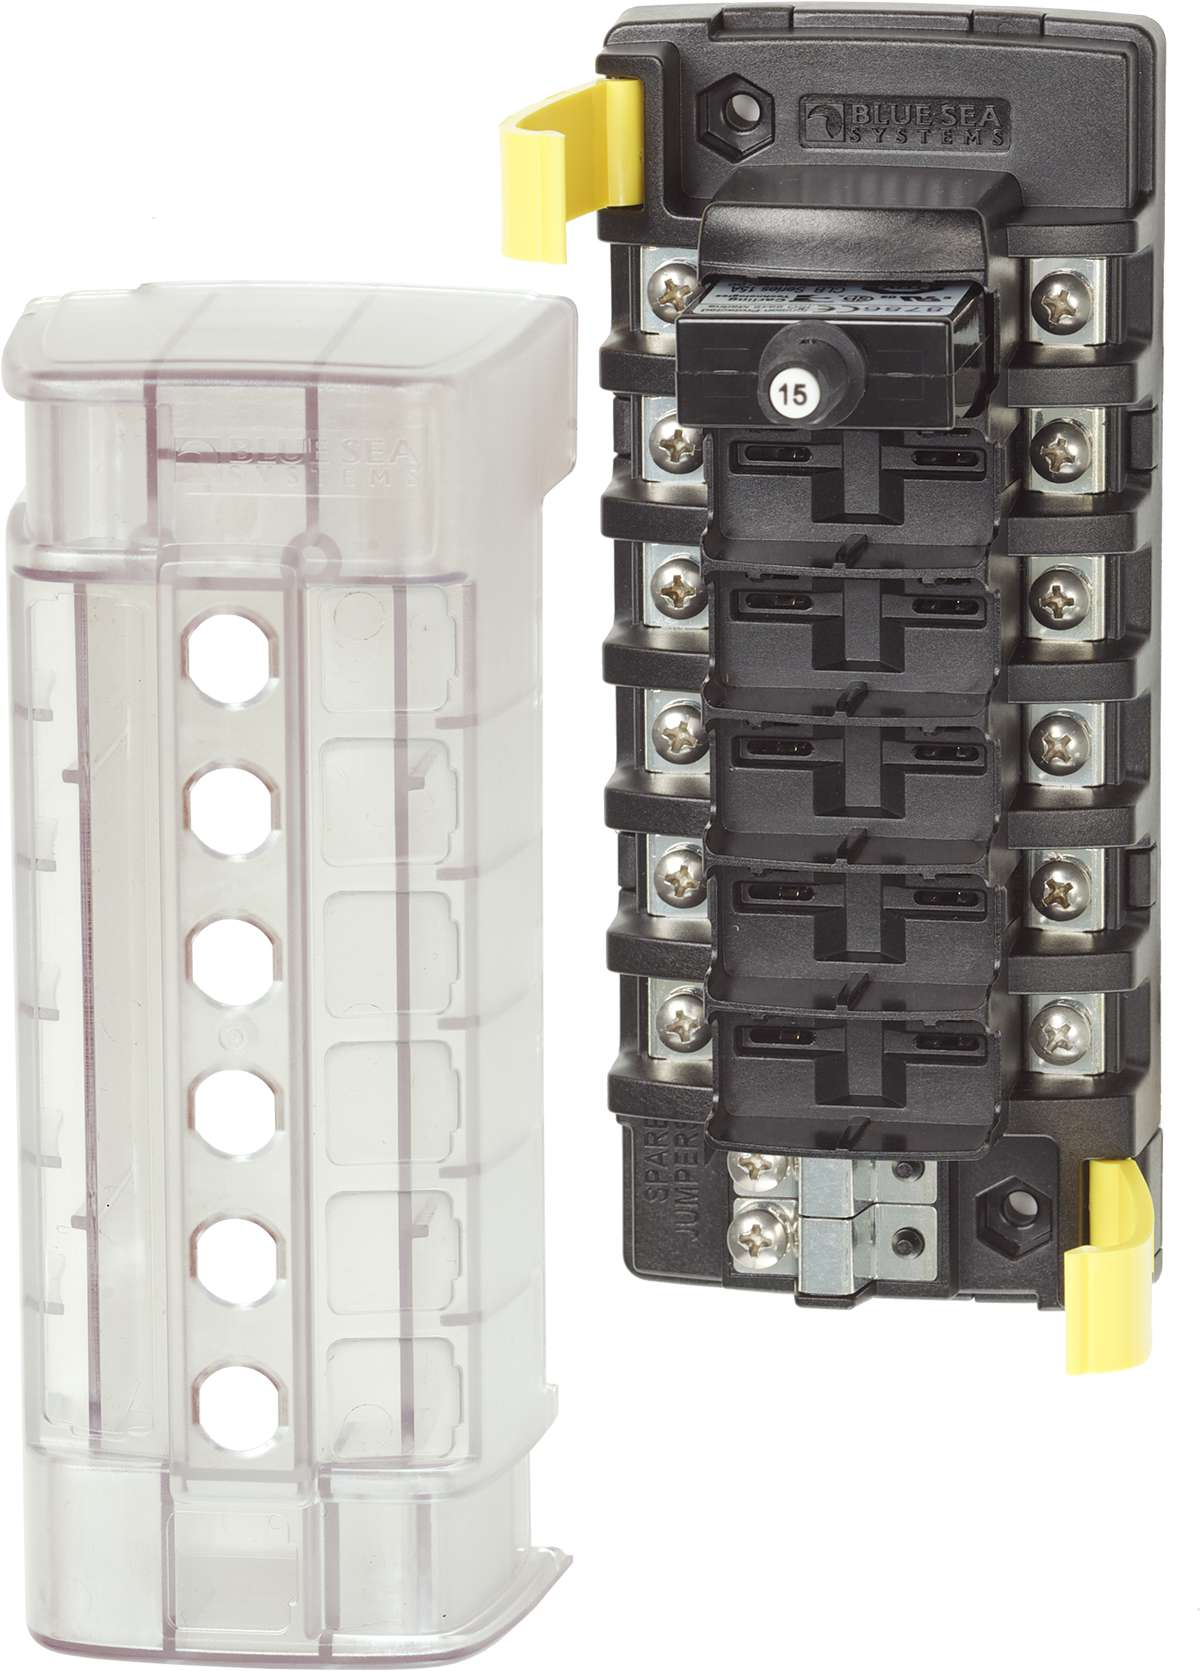 instructions for blue sea boat fuse block